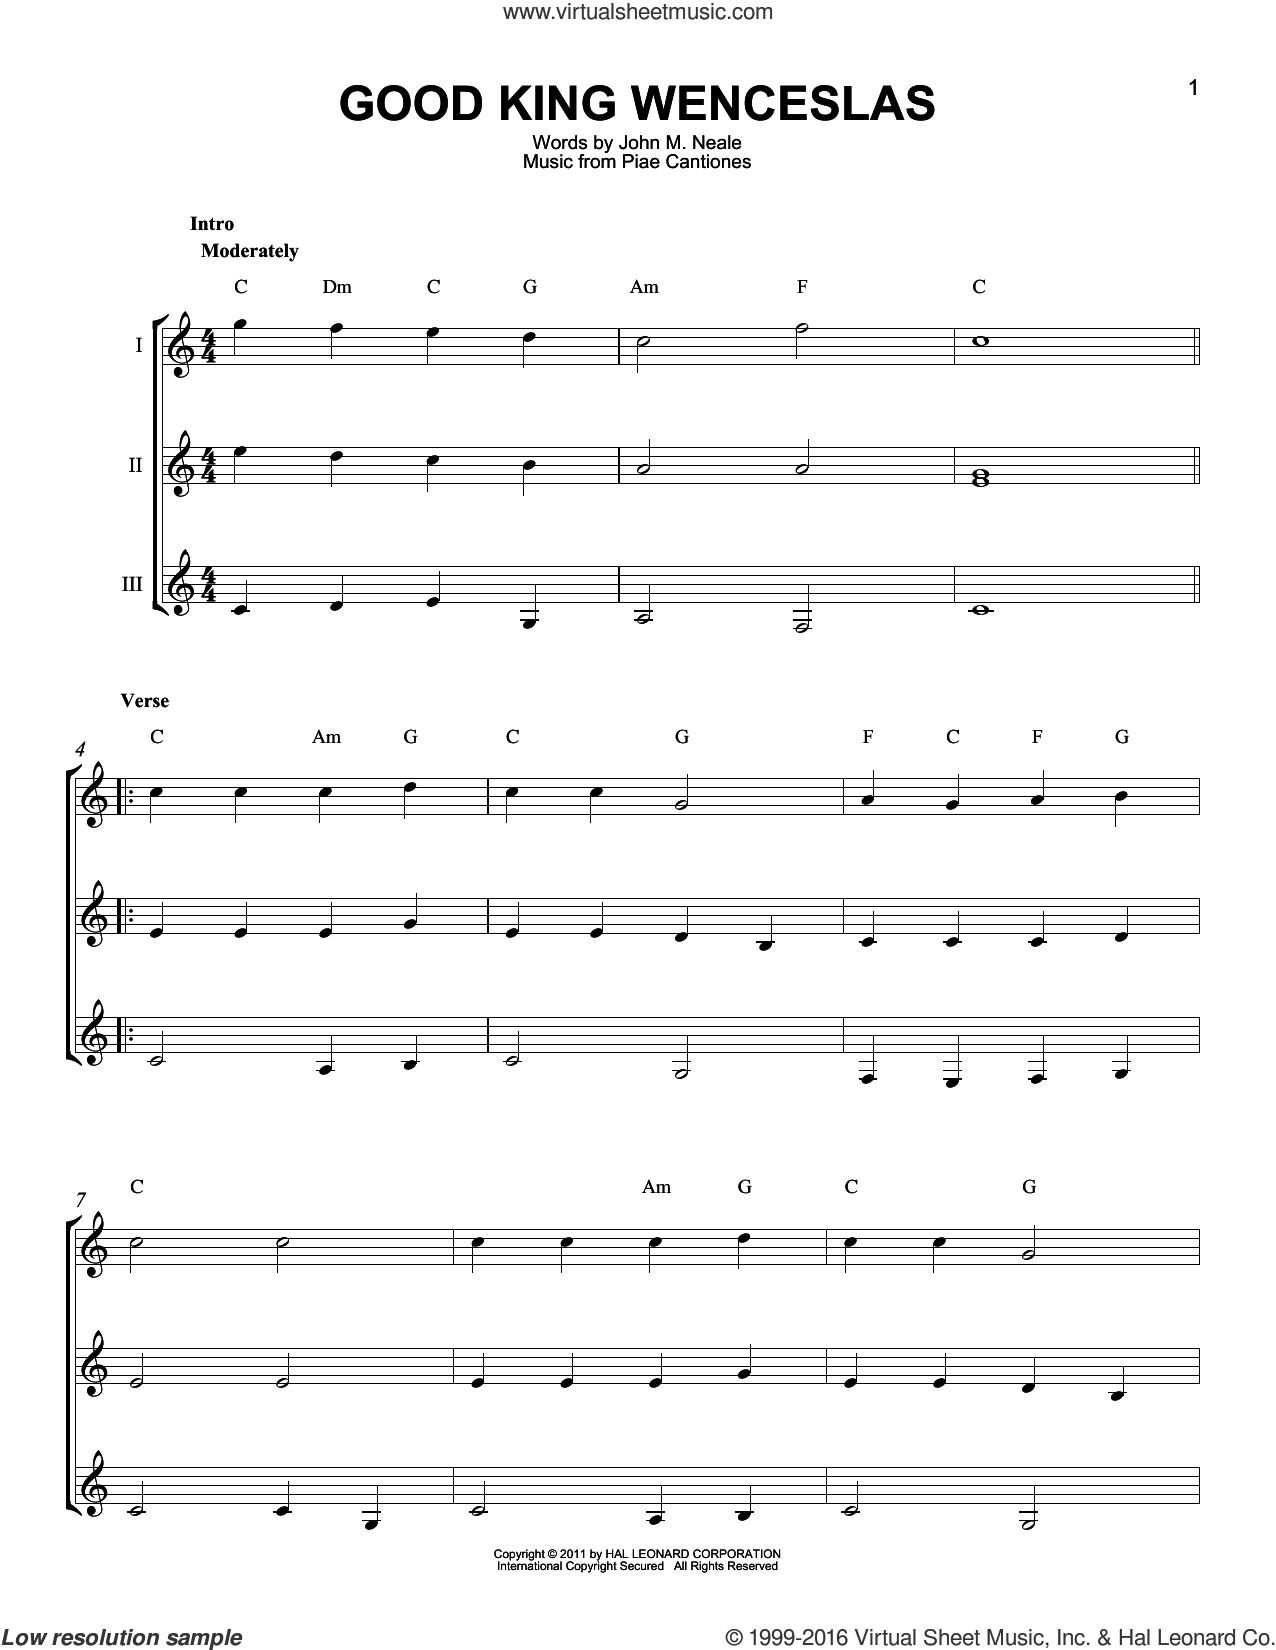 Good King Wenceslas sheet music for guitar ensemble by Piae Cantiones and John Mason Neale, intermediate skill level